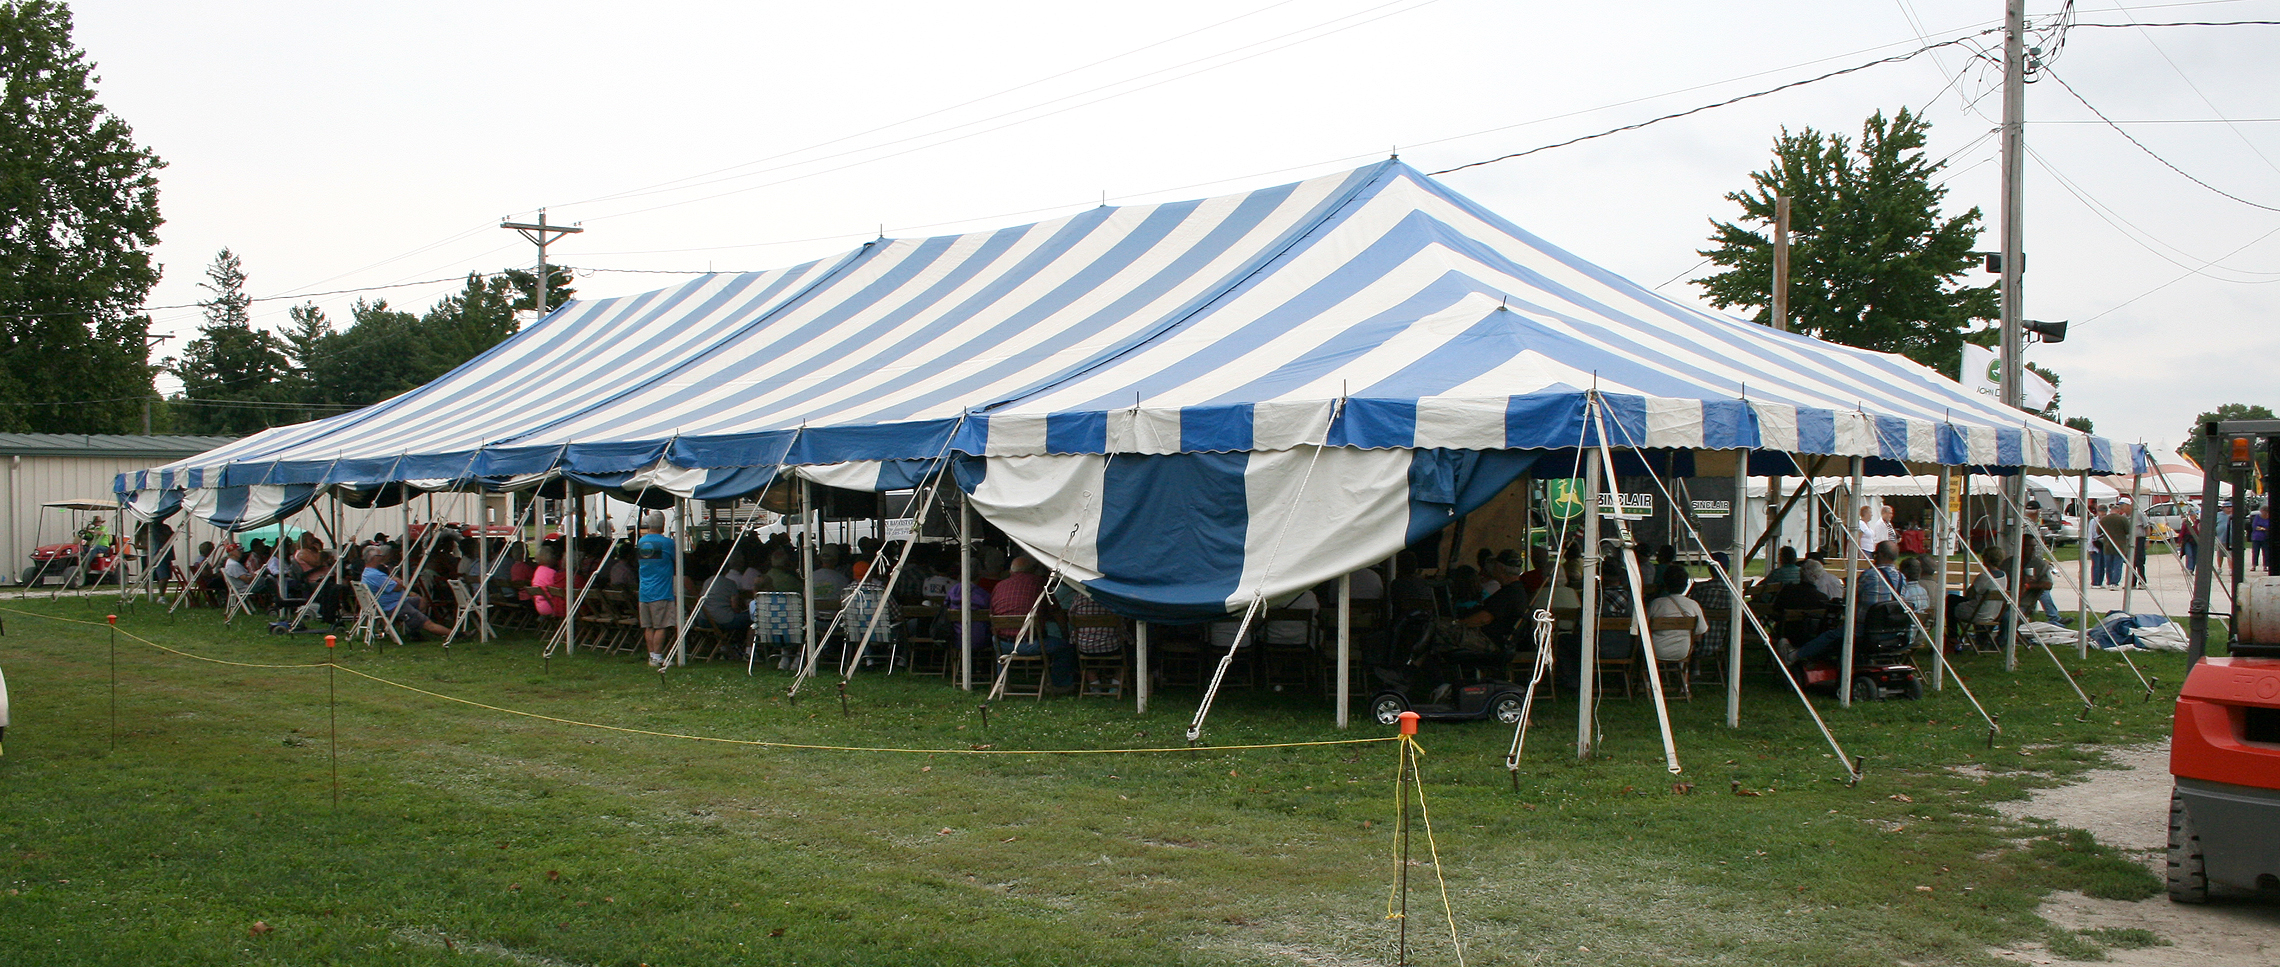 40u2032 x 100u2032 blue and white rope and pole tent with stage & 2014 Midwest Old Threshers setup by Big Ten Rentals